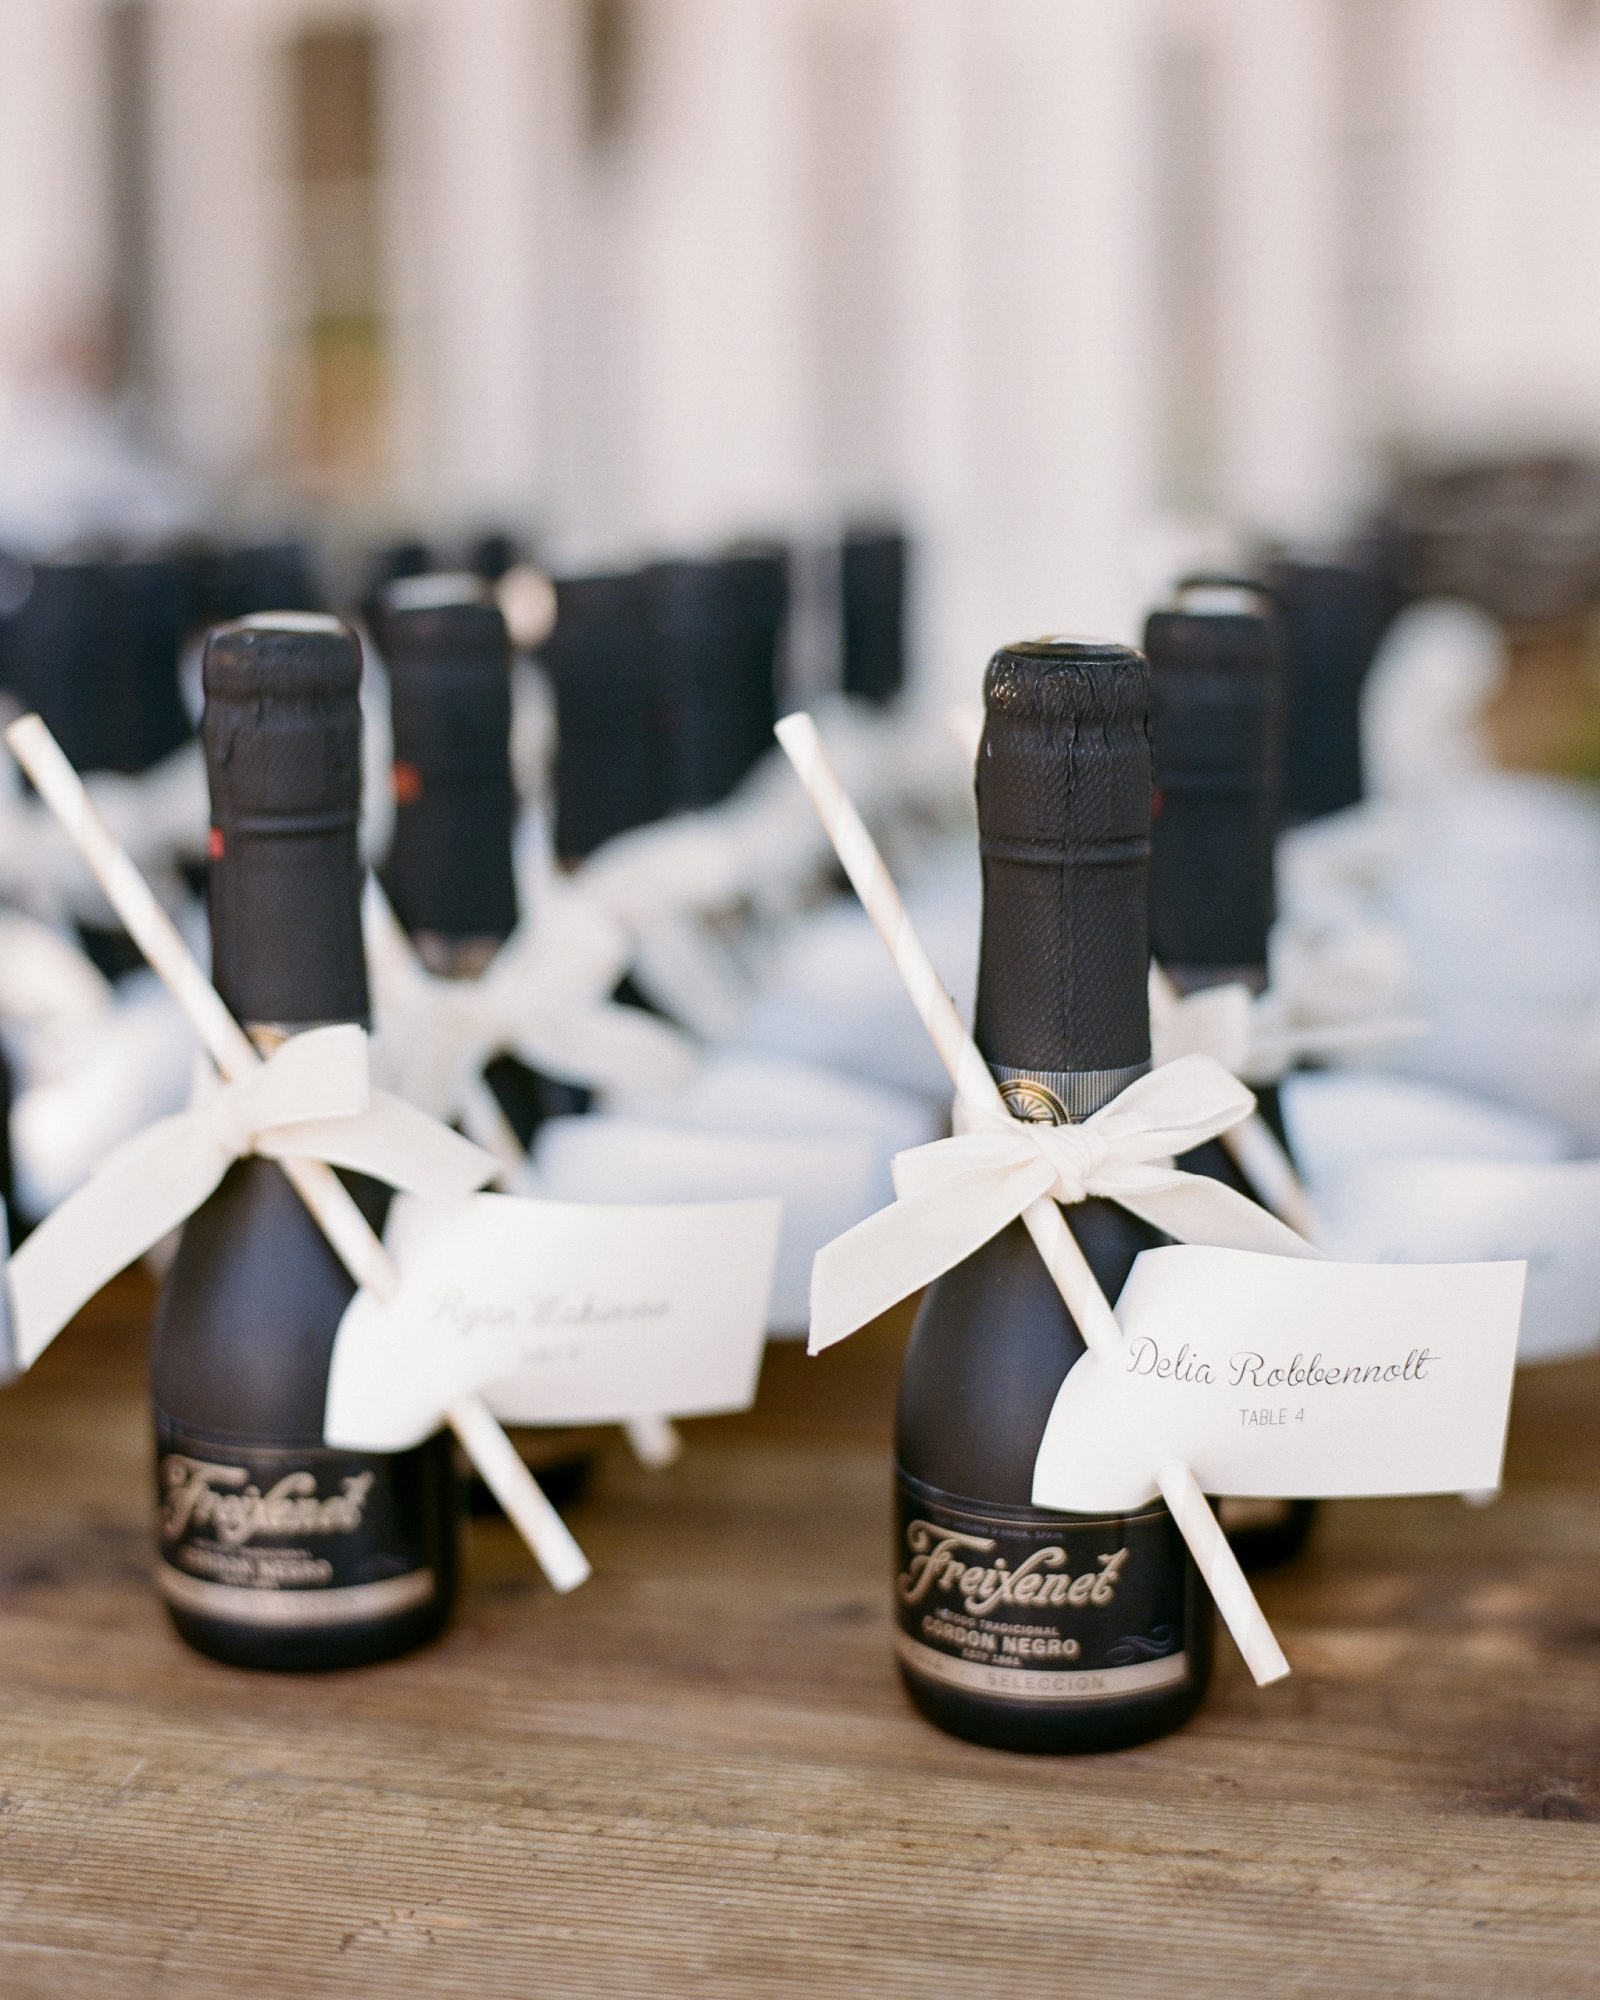 This couple sent celebrants home from their vineyard wedding with mini bottles of Freixenet wine.